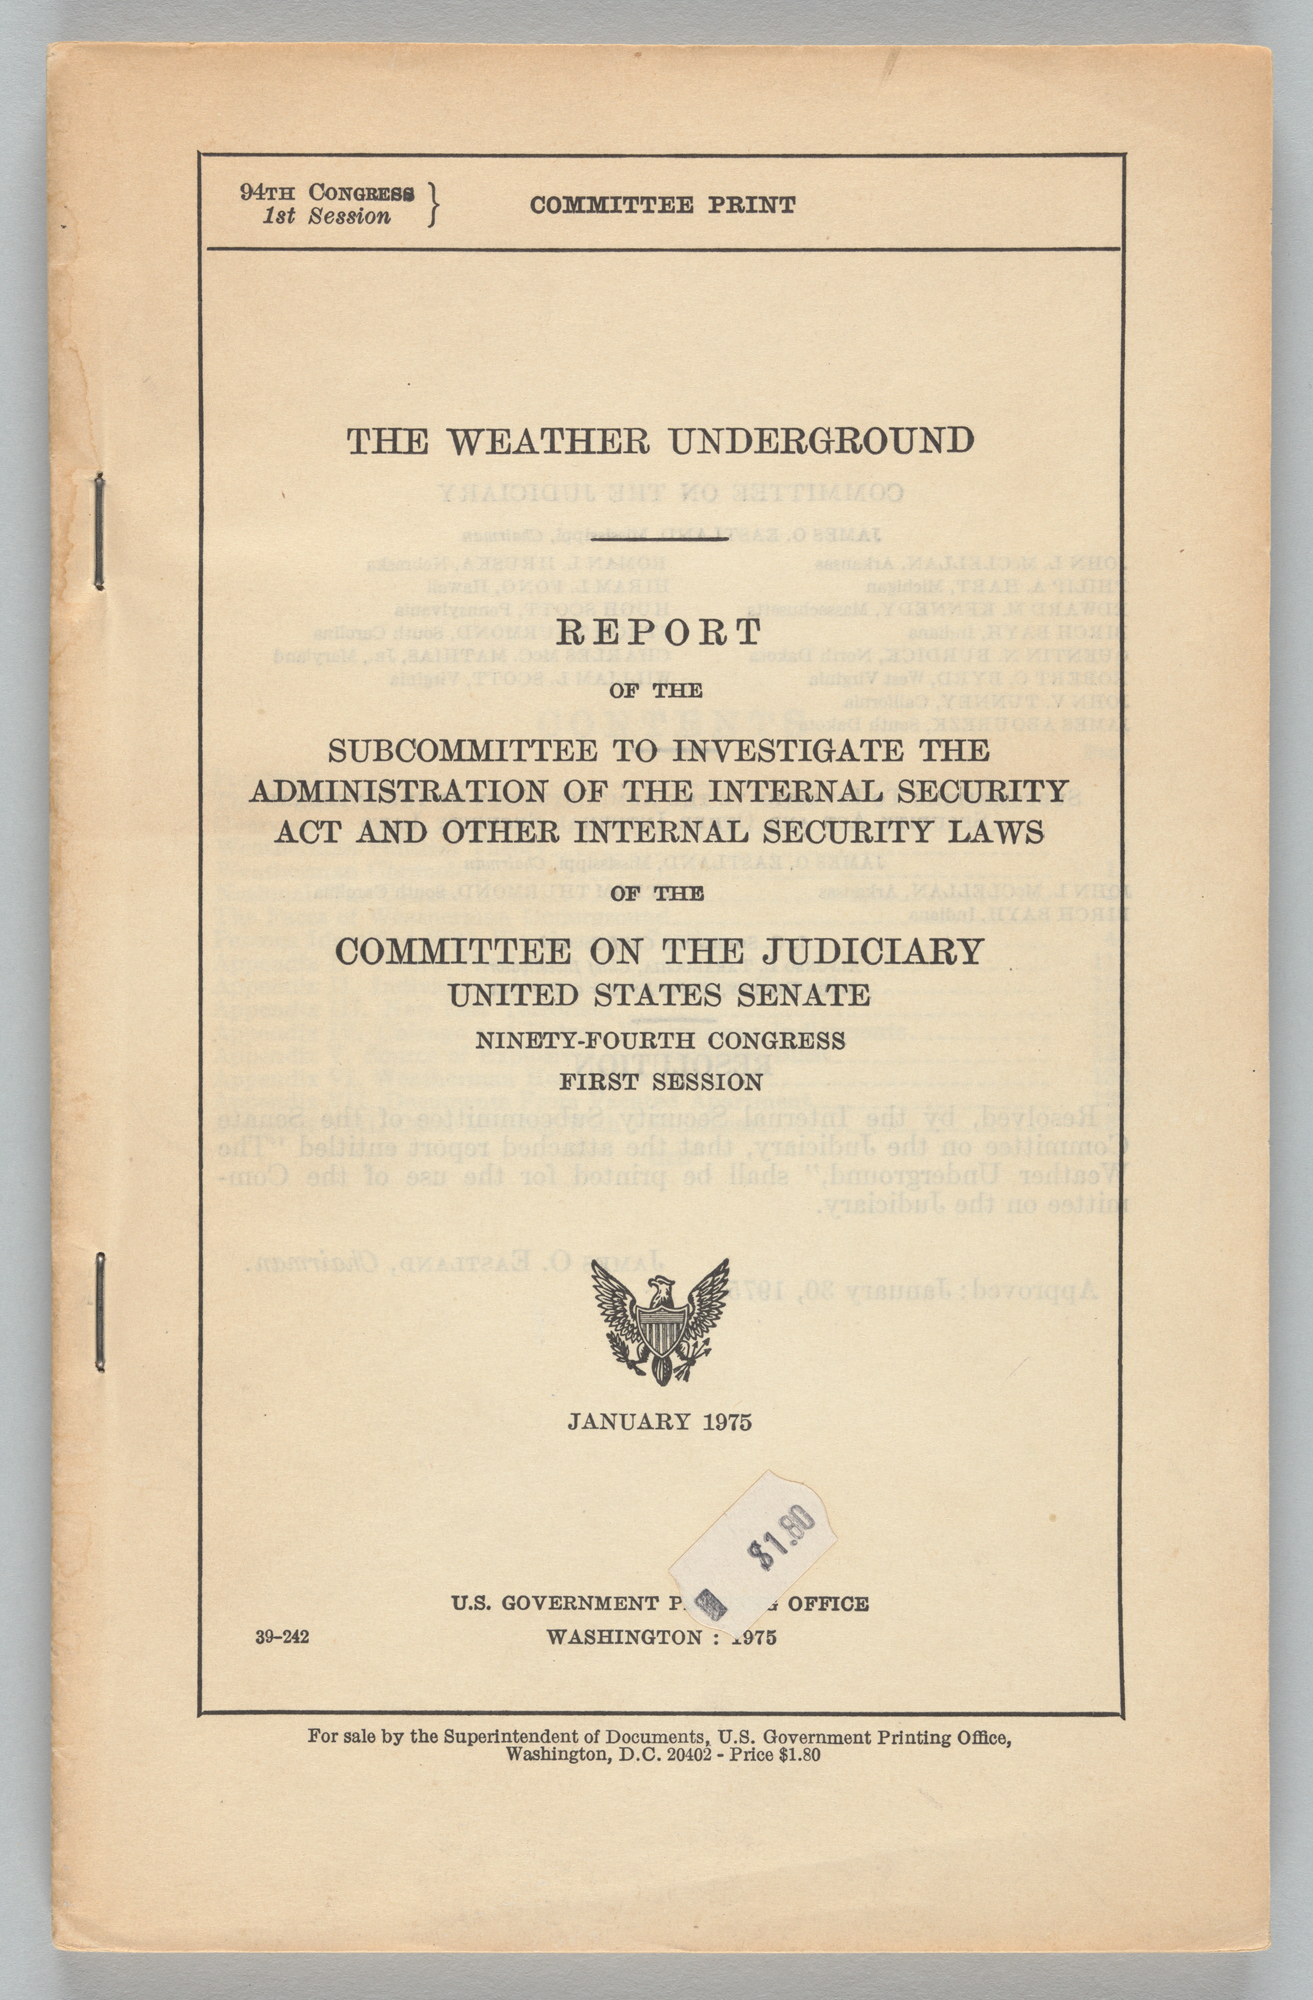 The Weather Underground: Report of the Subcommittee to Investigate the Administration of the Internal Security Act and Other Internal Security Laws, cover page